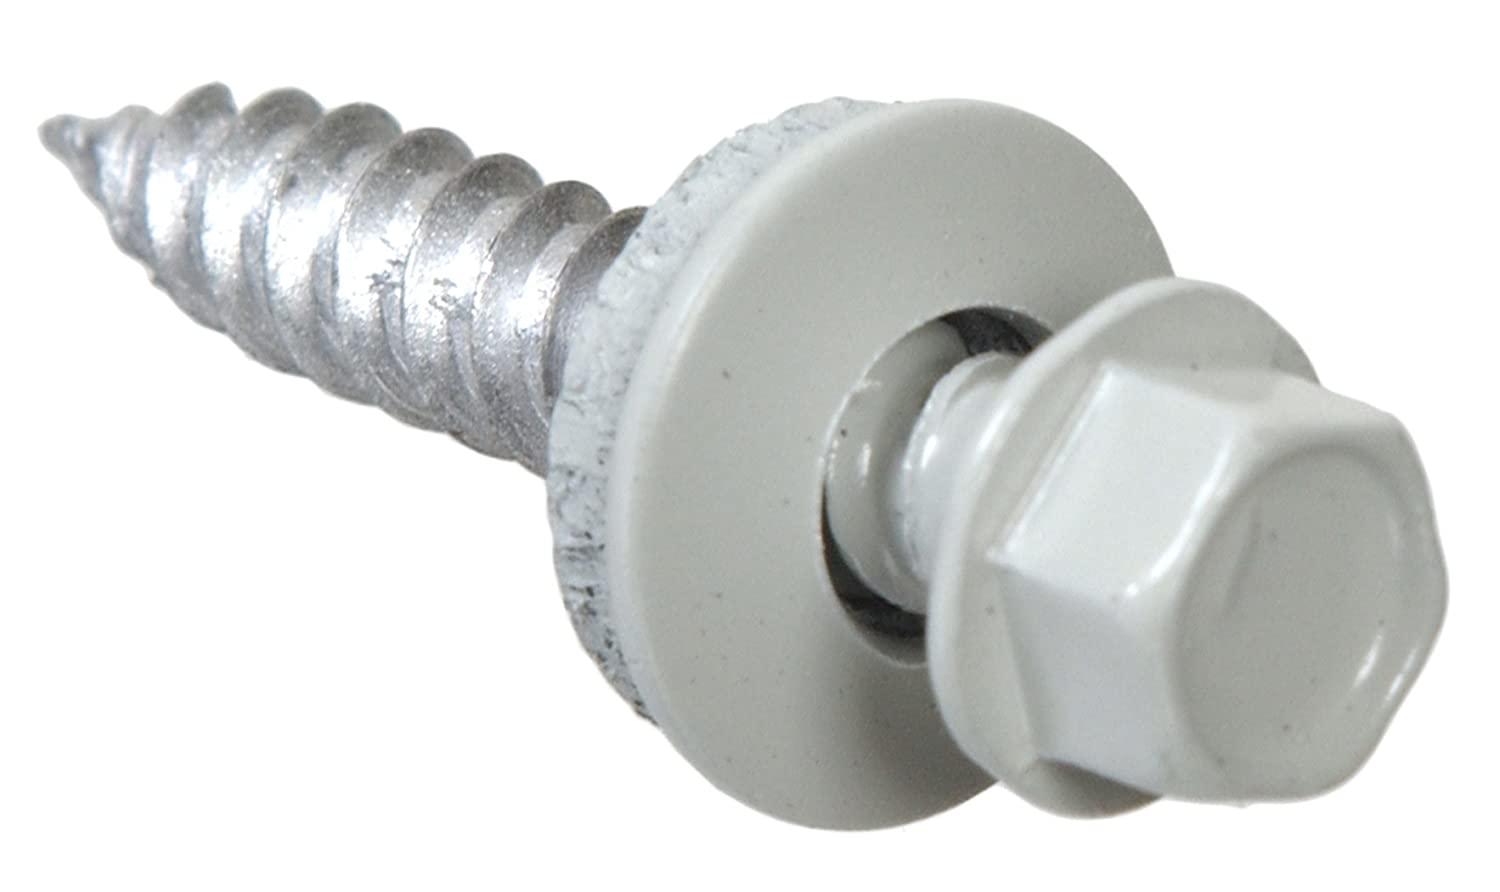 The Hillman GroupThe Hillman Group 35243 Hex Washer Head White Sheet Metal Screw 10 x 2 25-Pack